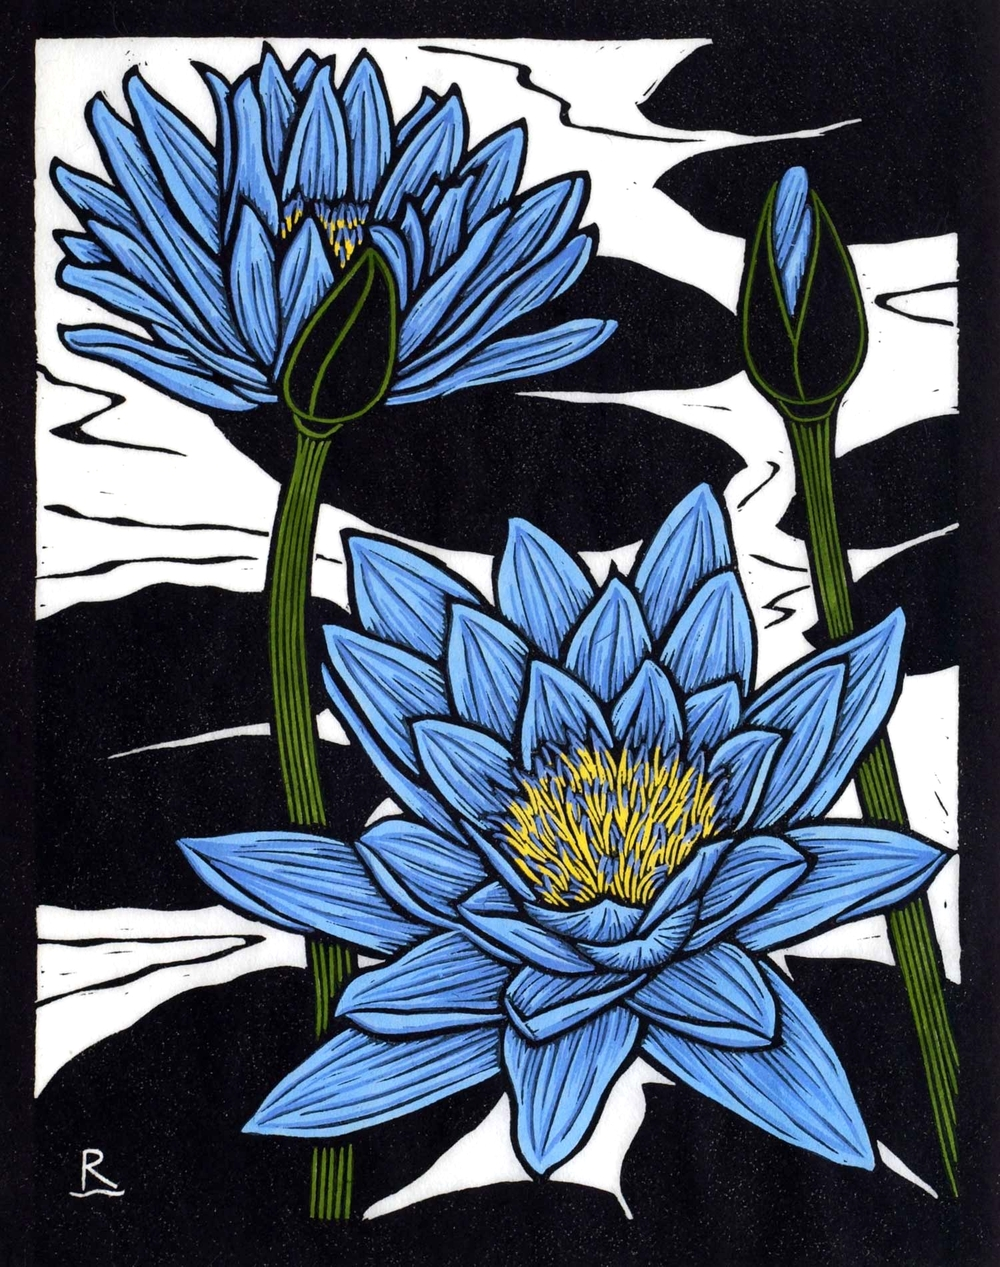 BLUE WATERLILY 28 X 22 CM    EDITION OF 50 HAND COLOURED LINOCUT ON HANDMADE JAPANESE PAPER $550